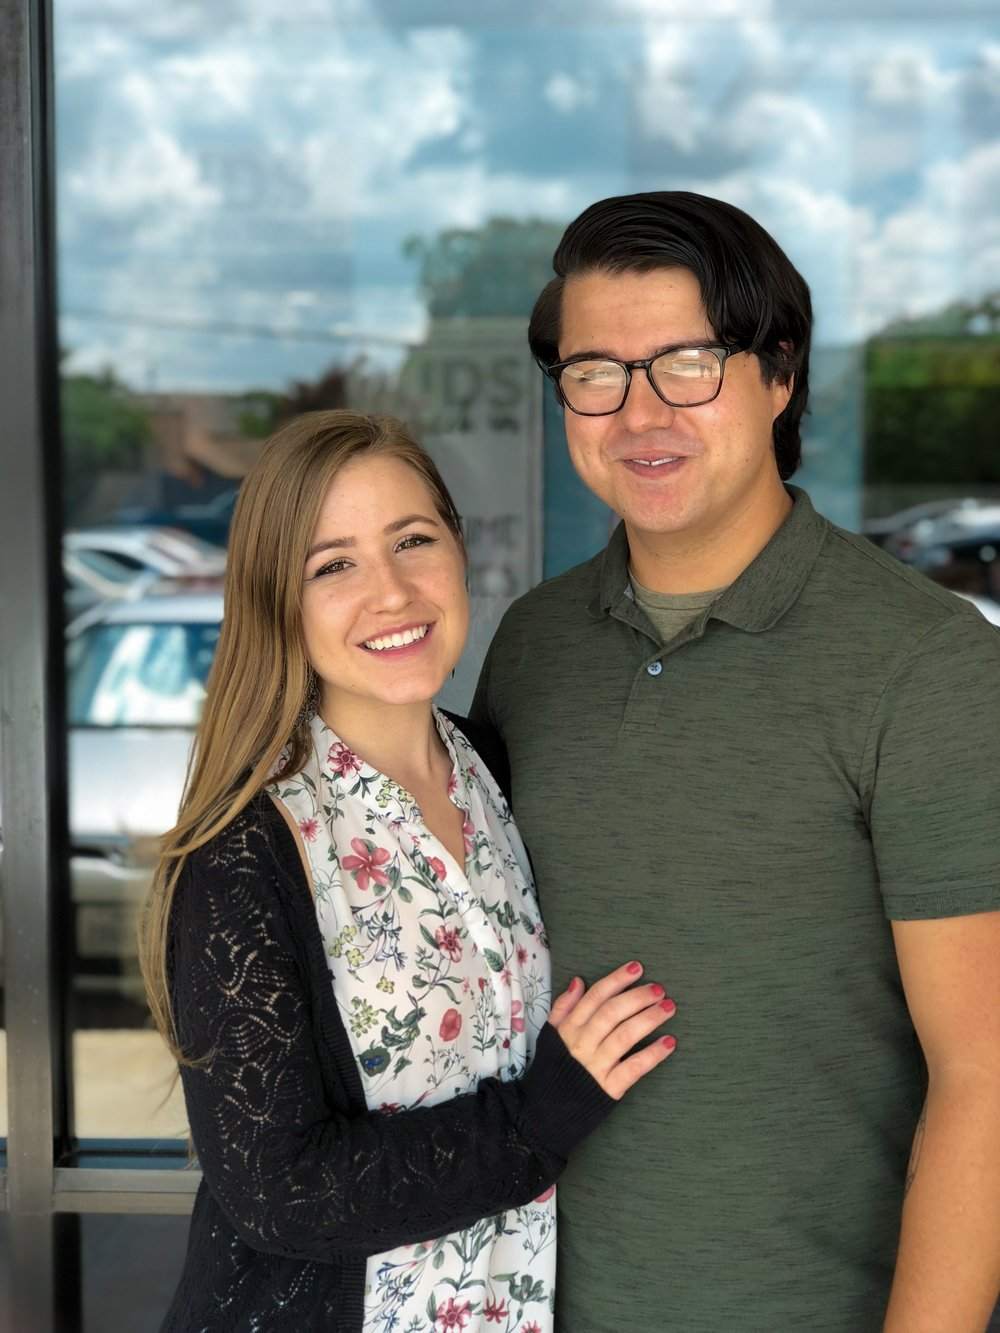 Christine & Caleb Flores - Christine & Caleb are amazing leaders in Reach Youth. Caleb is one of our outstanding worship leaders. Christine also serves on the worship team and is a powerful speaker.